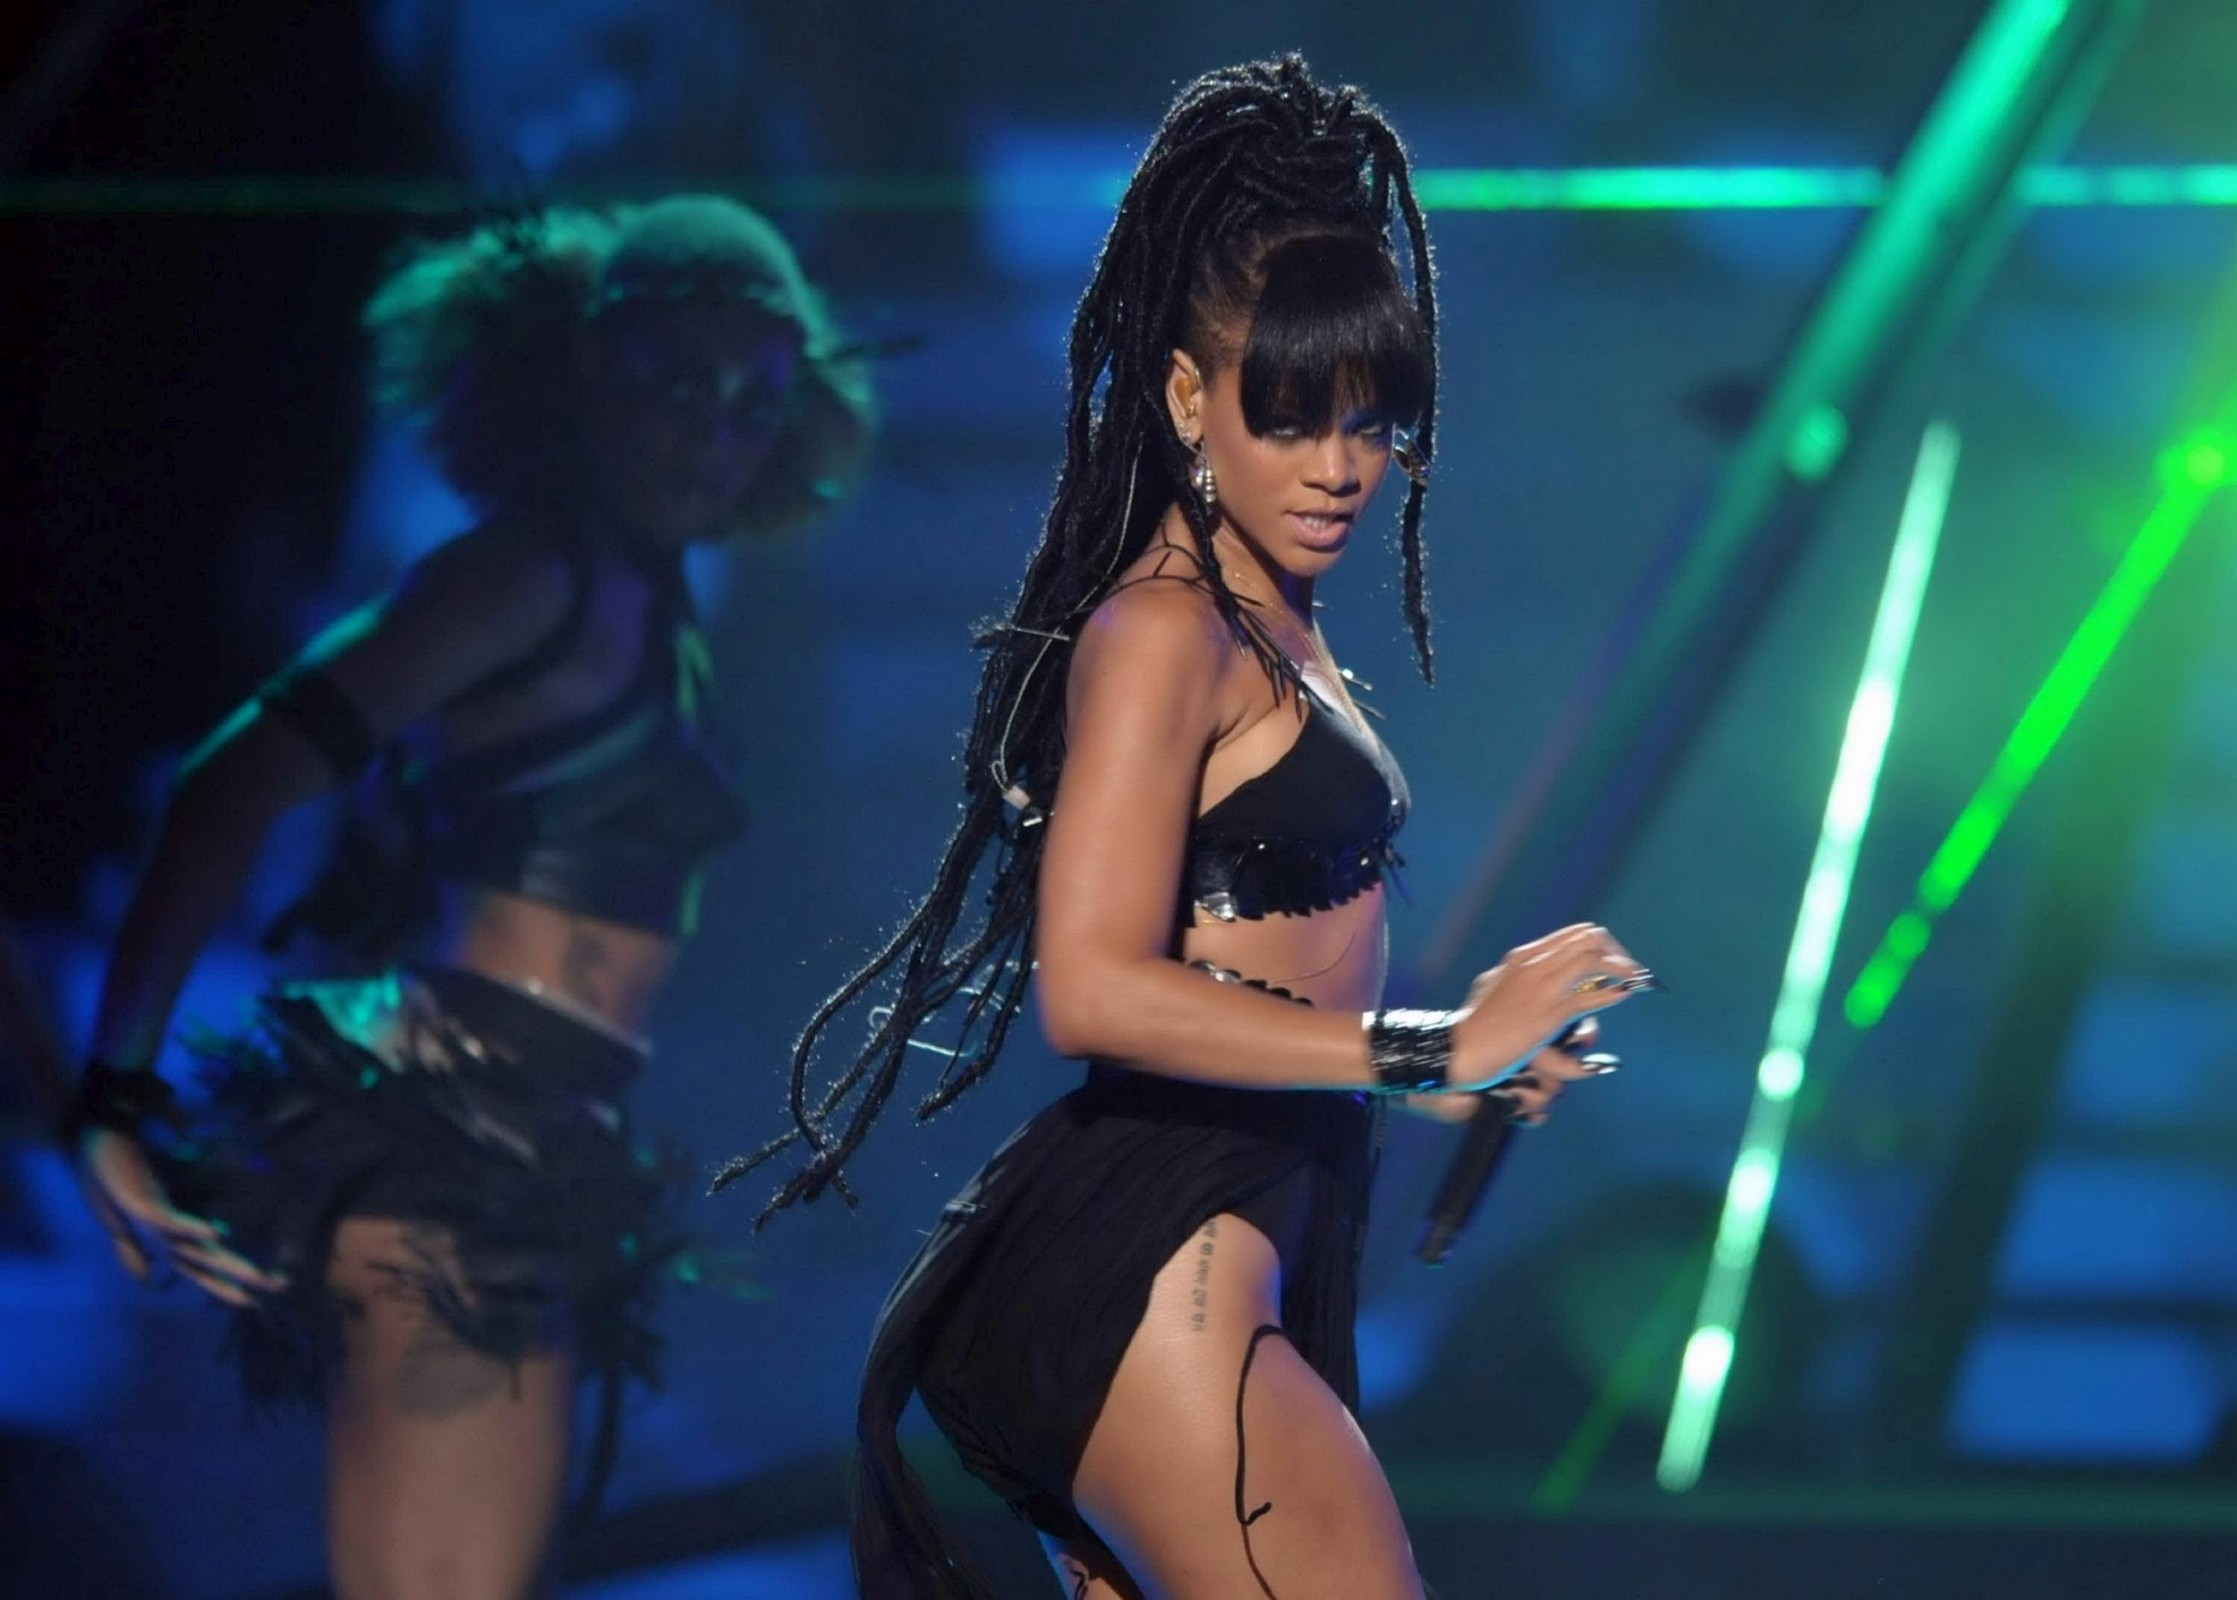 Rihanna performing on stage-13